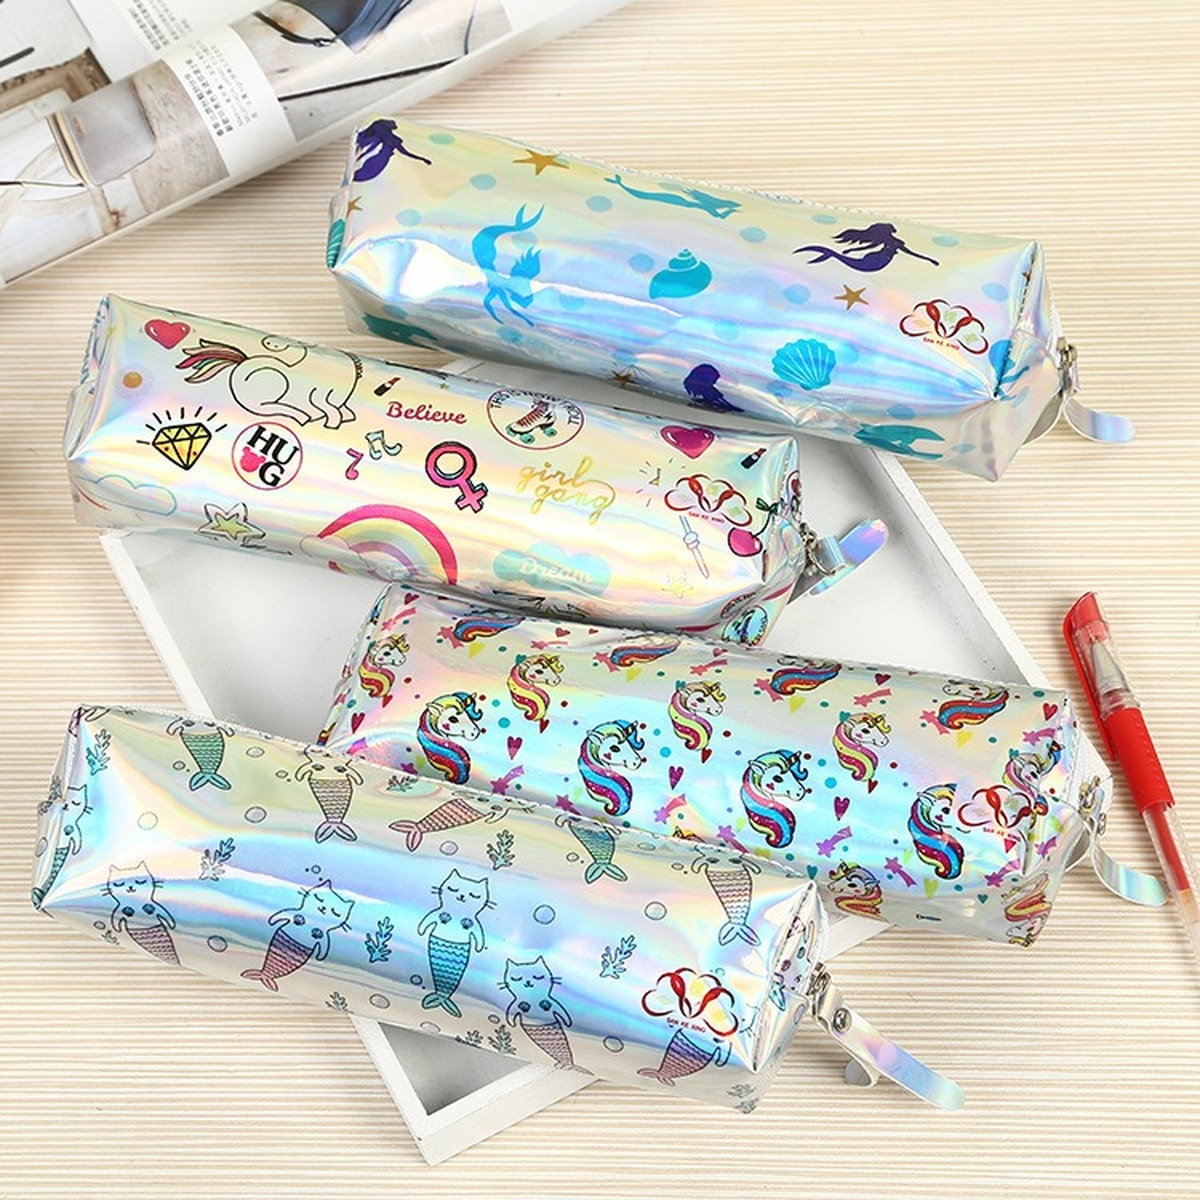 Kawaii Cute Christmas Gift Waterproof Rainbow Laser Beautiful Unicorn Mermaid Pattern Back To School Supplies Pencil Case